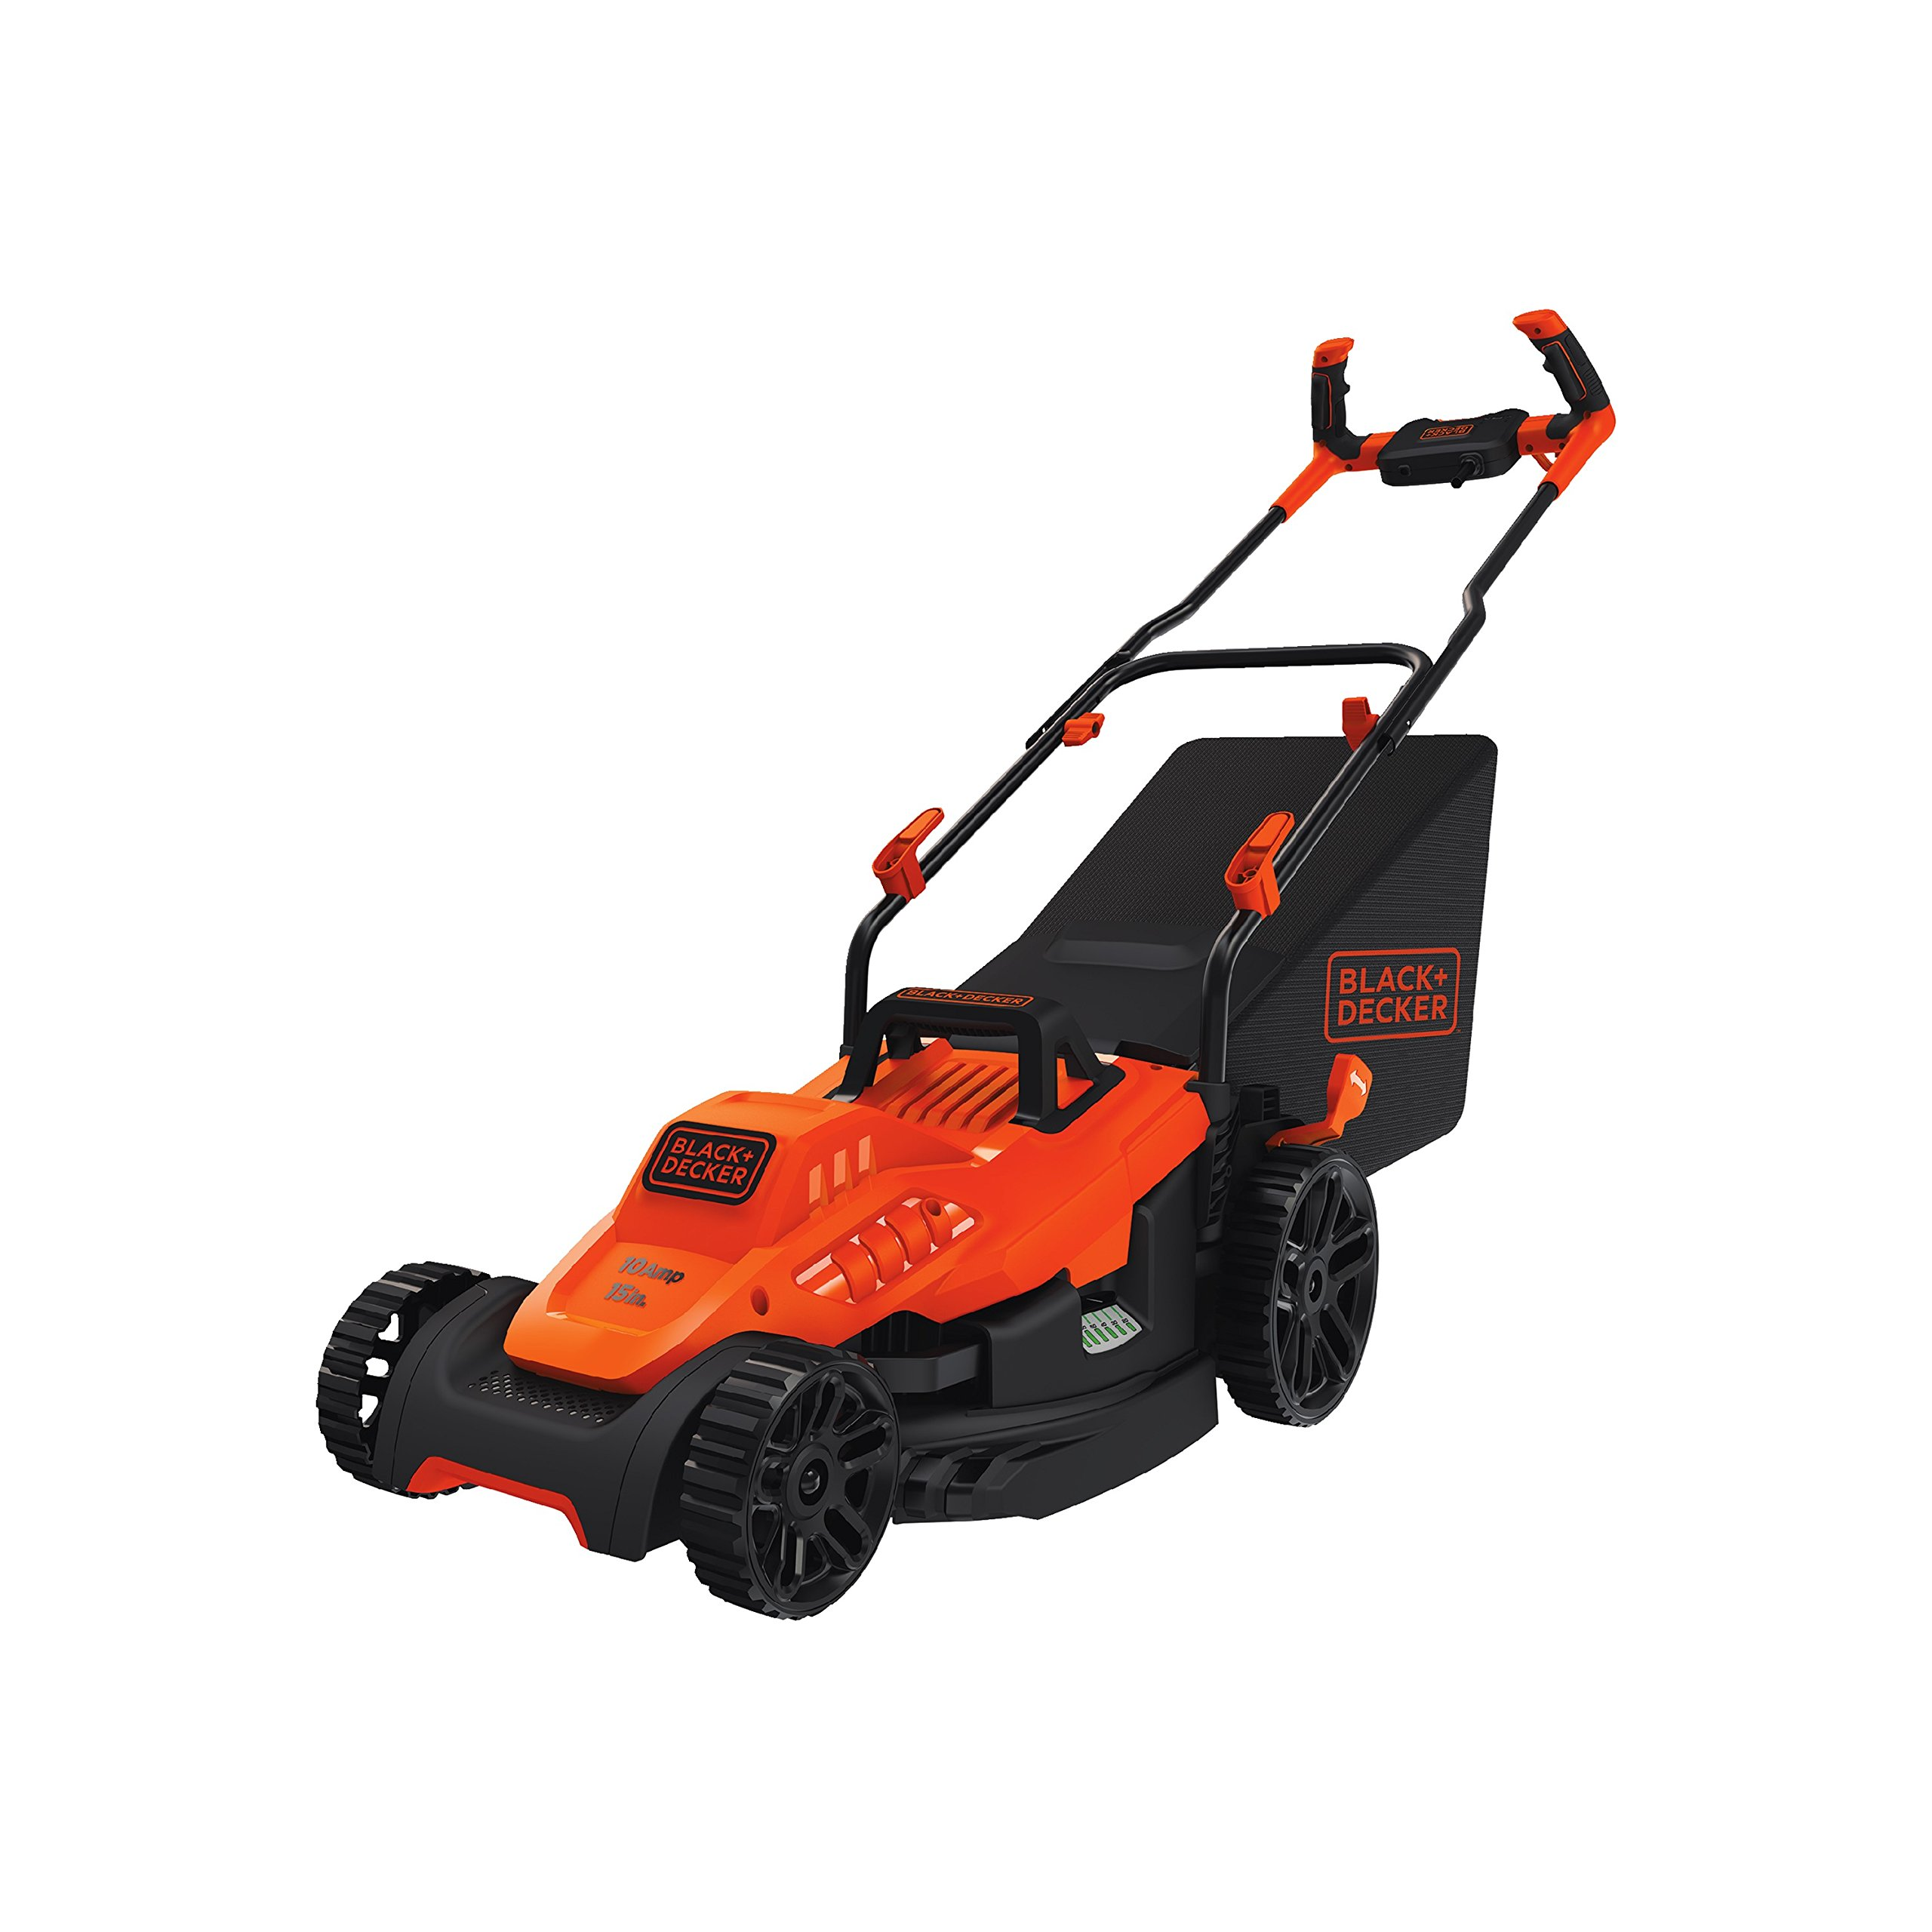 BLACK+DECKER BEMW472BH 10 Amp 15'' Electric Lawn Mower